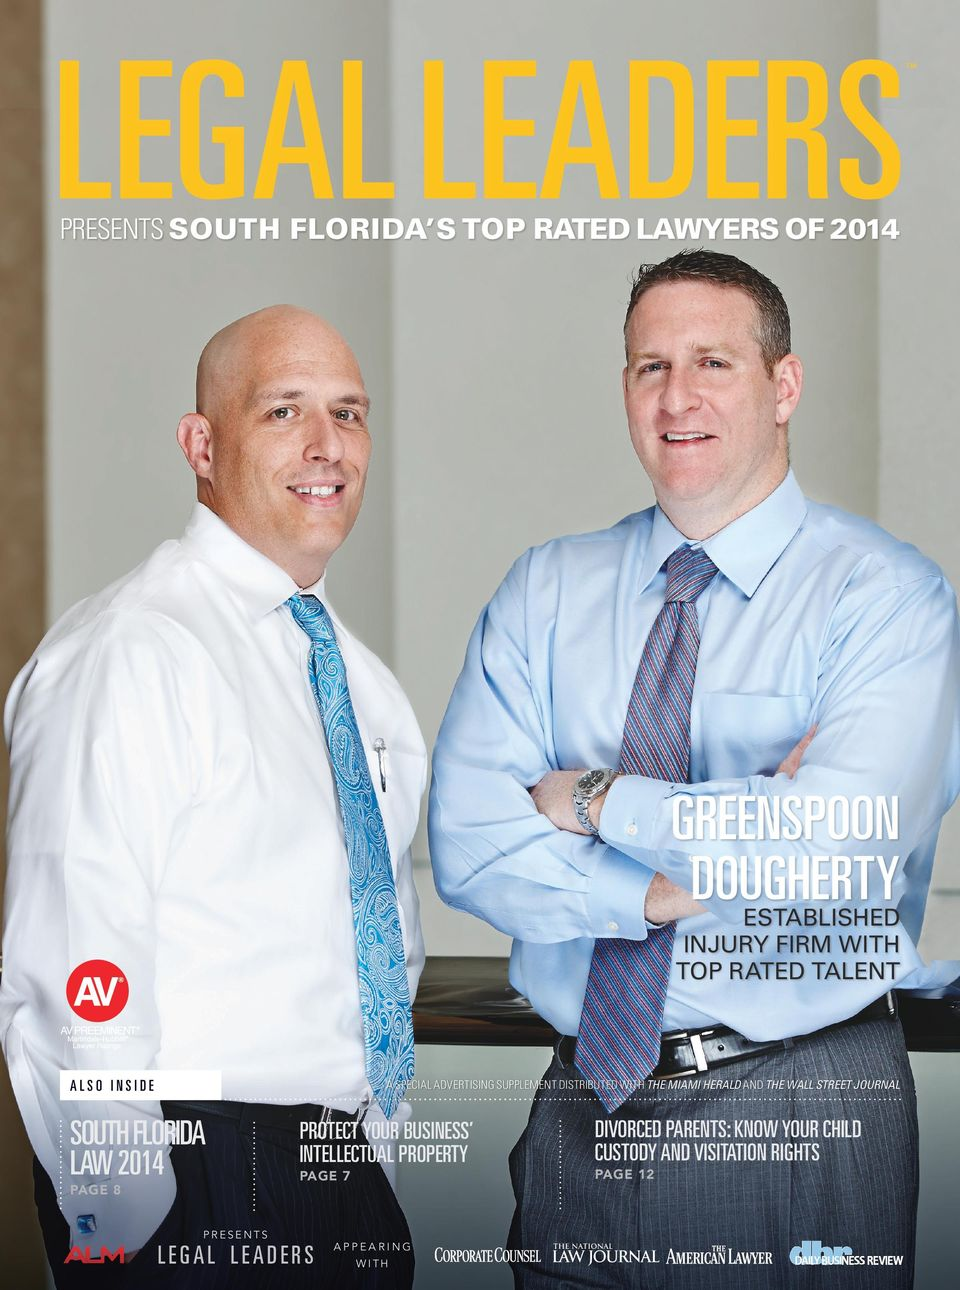 STREET JOURNAL SOUTH FLORIDA LAW 2014 PAGE 8 PRESENTS PROTECT YOUR BUSINESS INTELLECTUAL